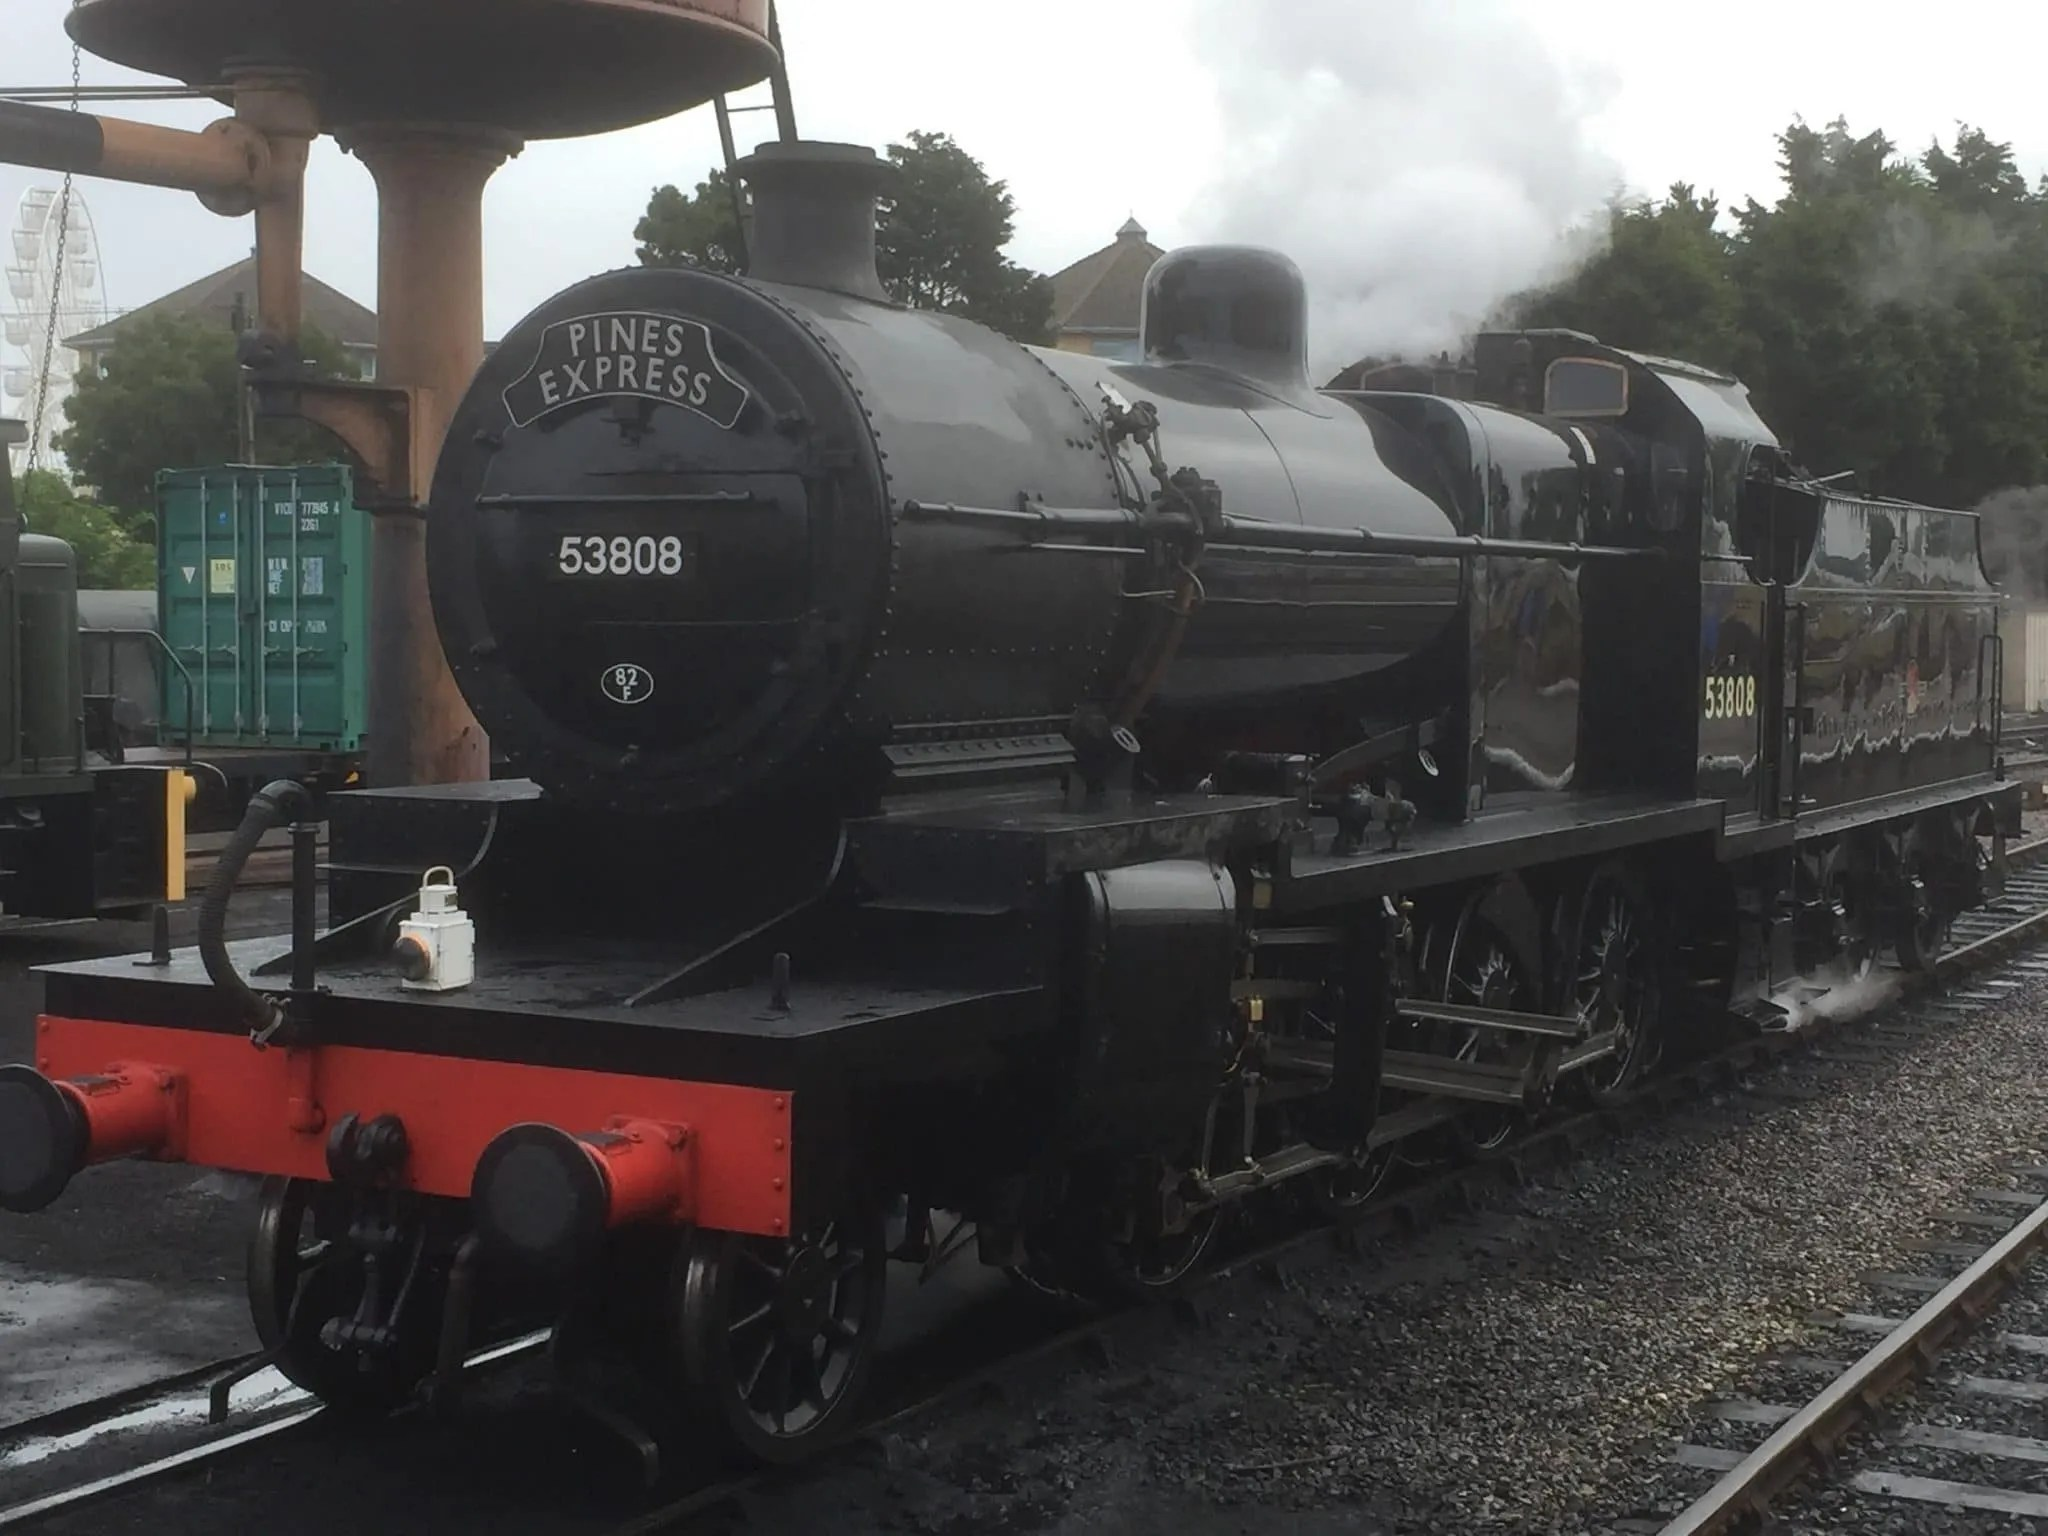 7f 53808 about to work the Pines Express on the West Somerset Railway